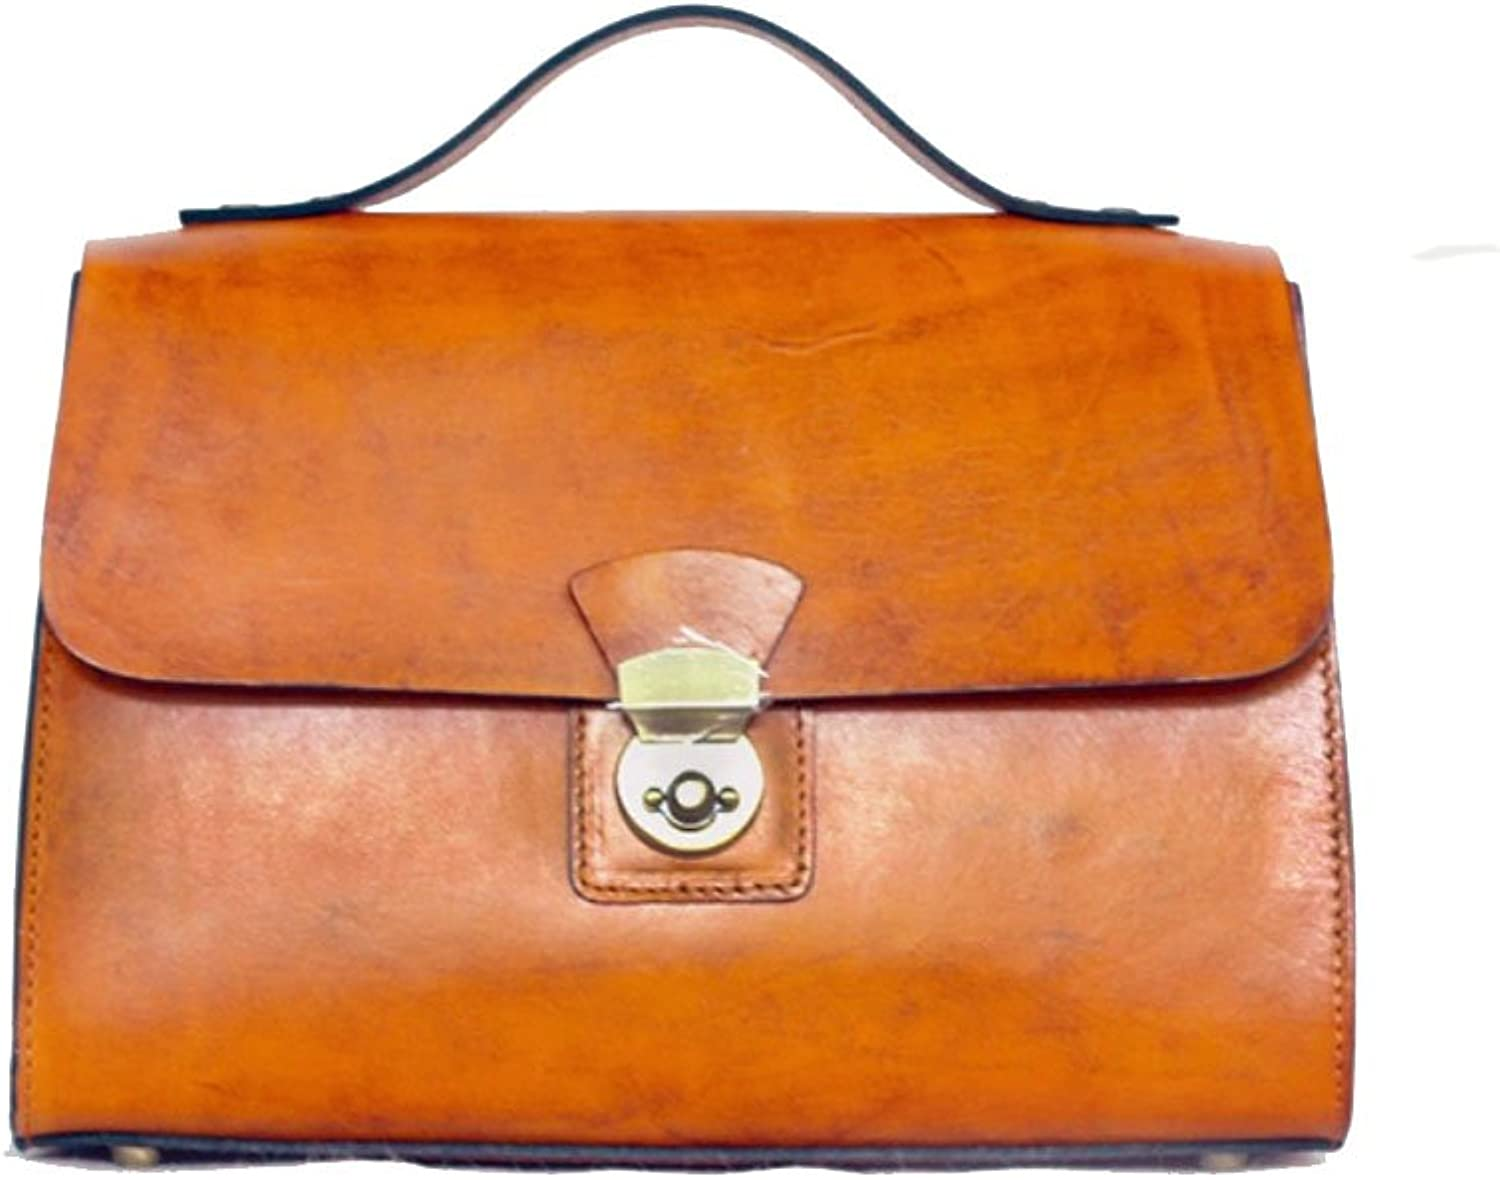 HIFISH HB100331 First Layer Of Leather OL Commuter Handbag,Box Commuter Bag